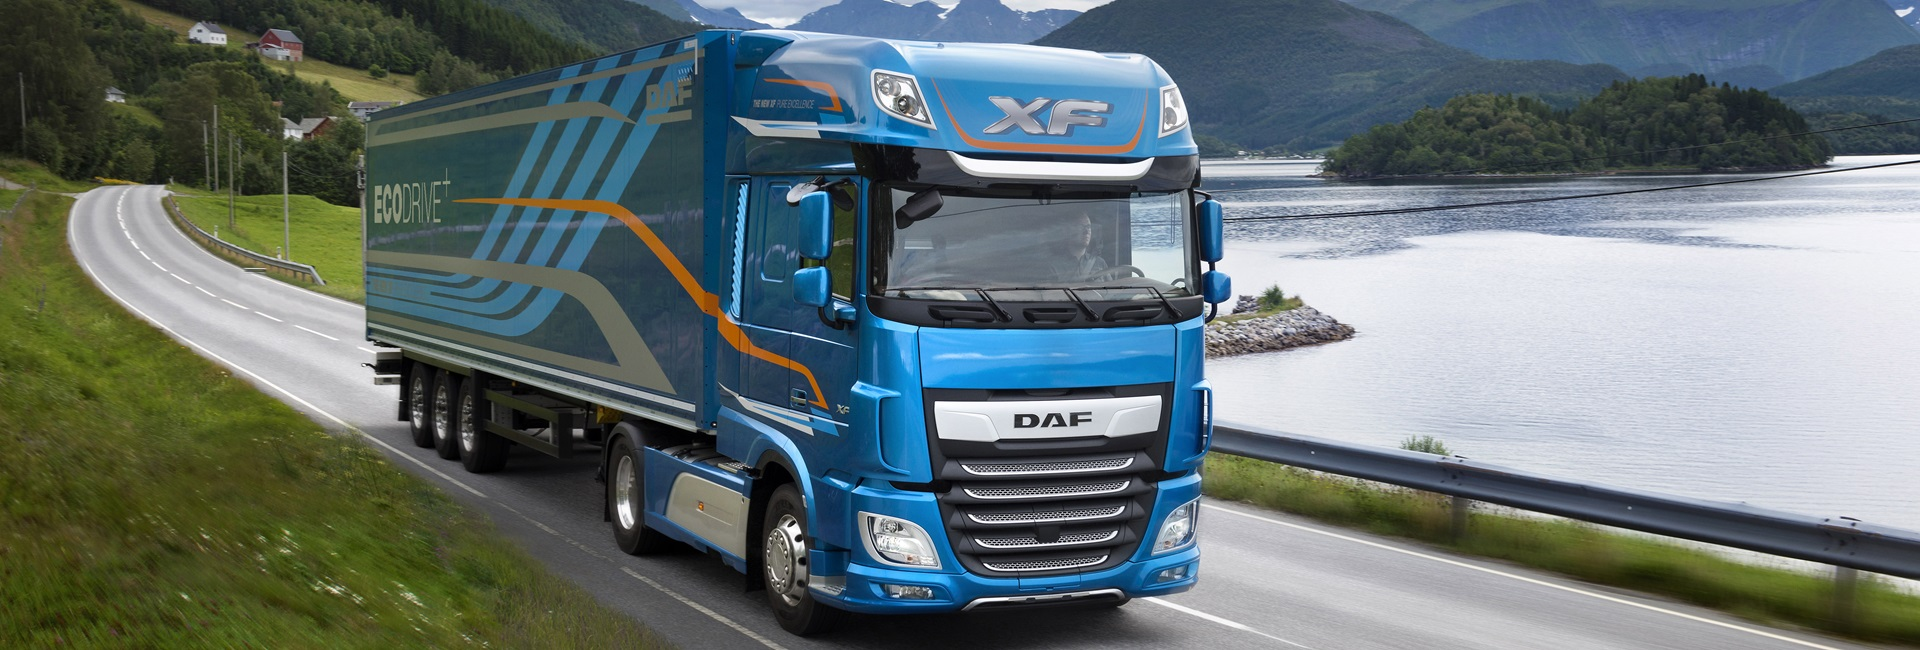 DAF-EcoDrive-Training_7WH9218-large